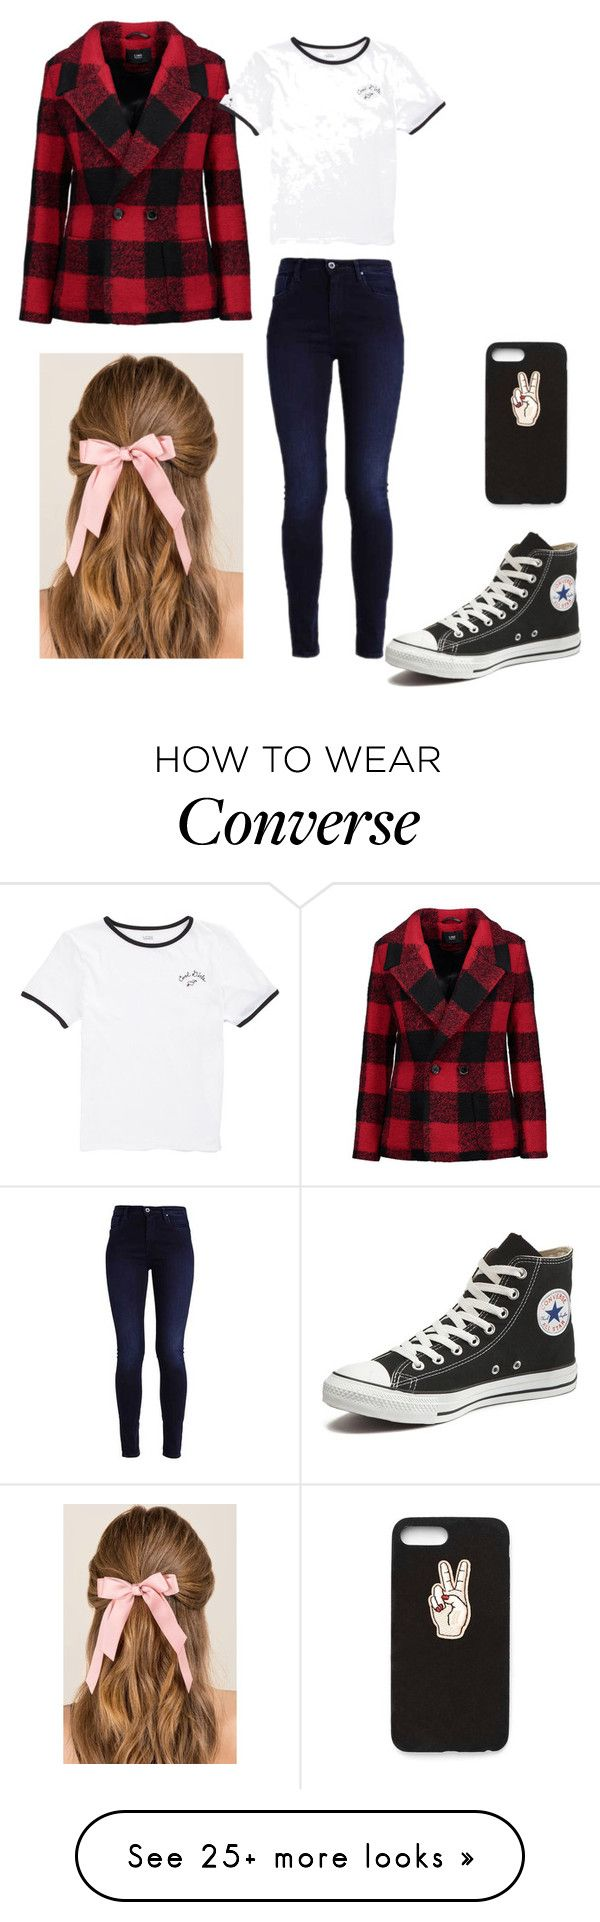 """Casually Hanging Out"" by perez-rose on Polyvore featuring Line, Vans, Converse, Nasty Gal, Francesca's and statementcoats"